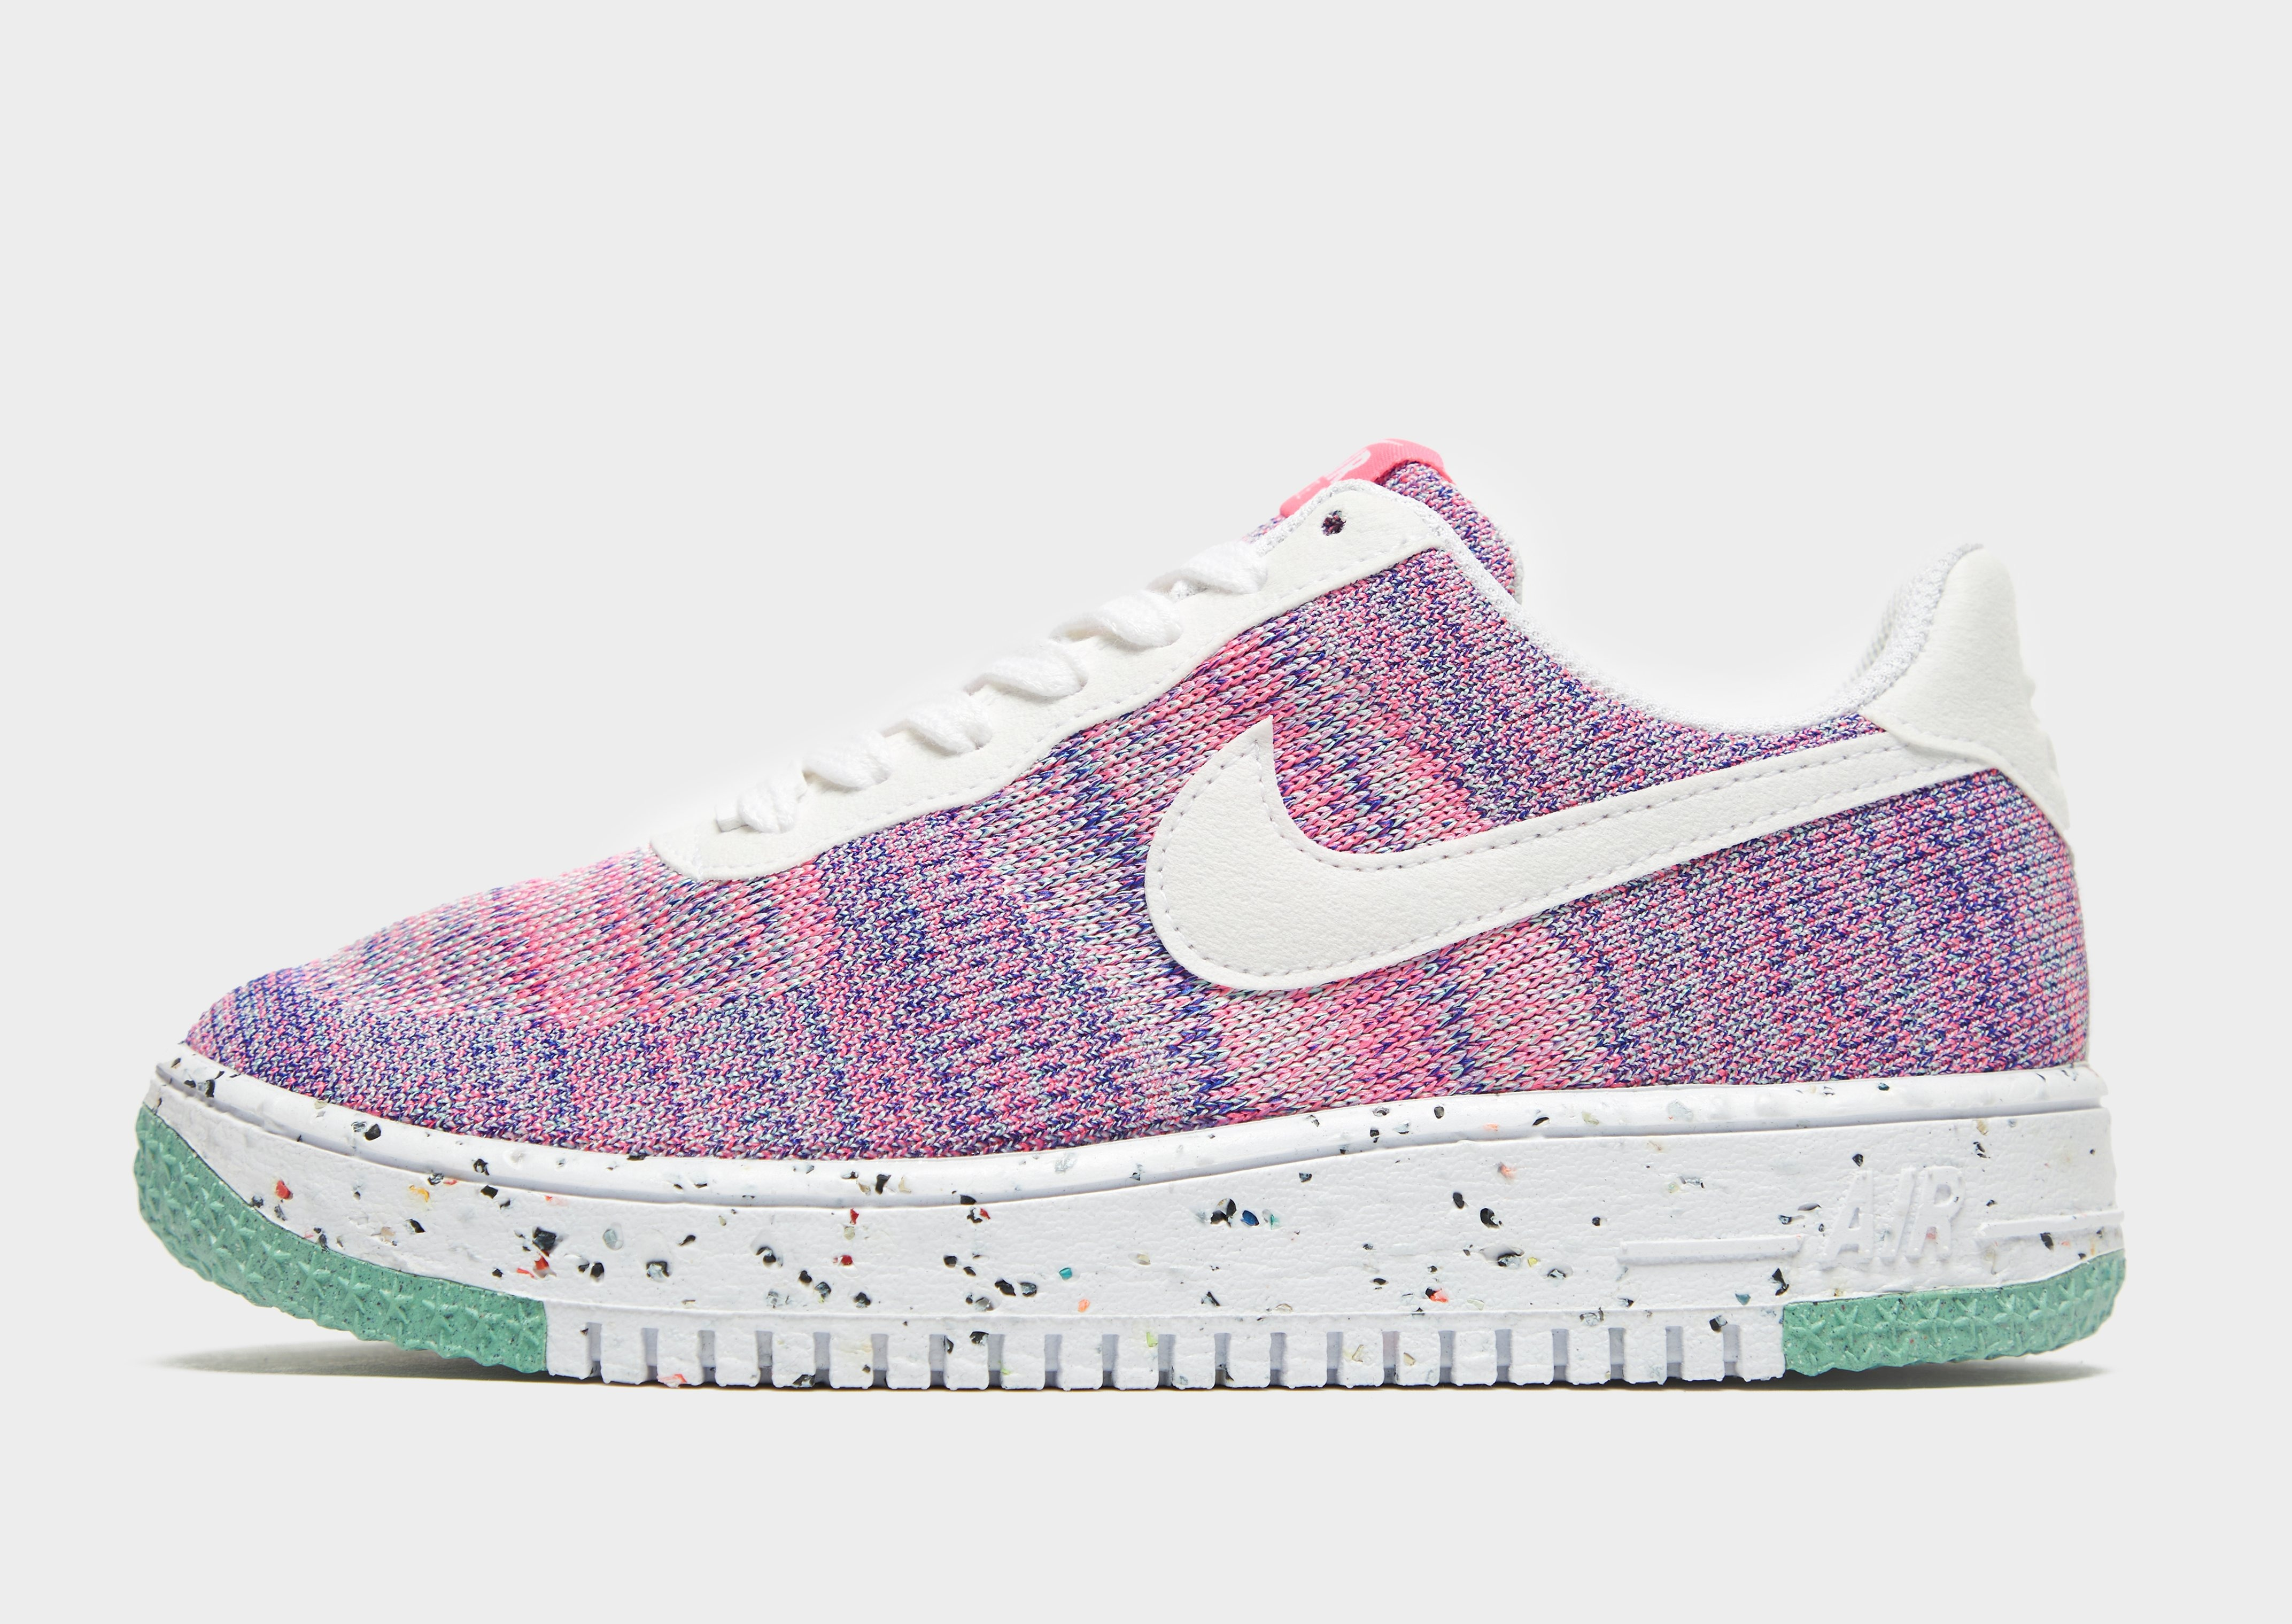 Nike Air Force 1 Crater Flyknit Women's   JD Sports